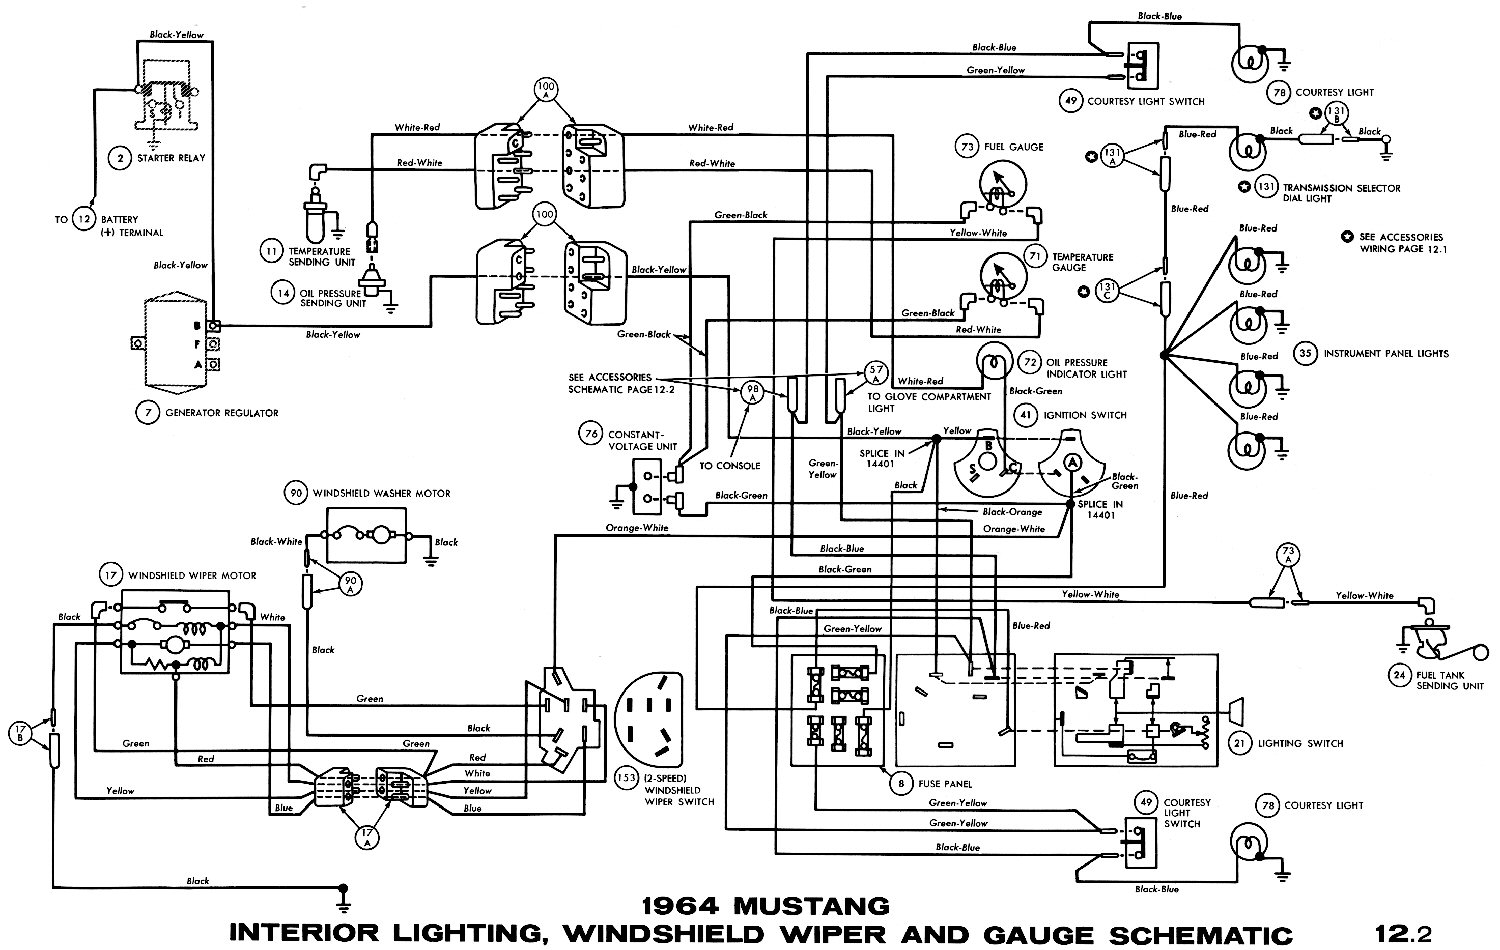 1964k 1966 mustang wiring diagram 1967 mustang wiring schematic \u2022 wiring 66 mustang ignition wiring diagram at crackthecode.co